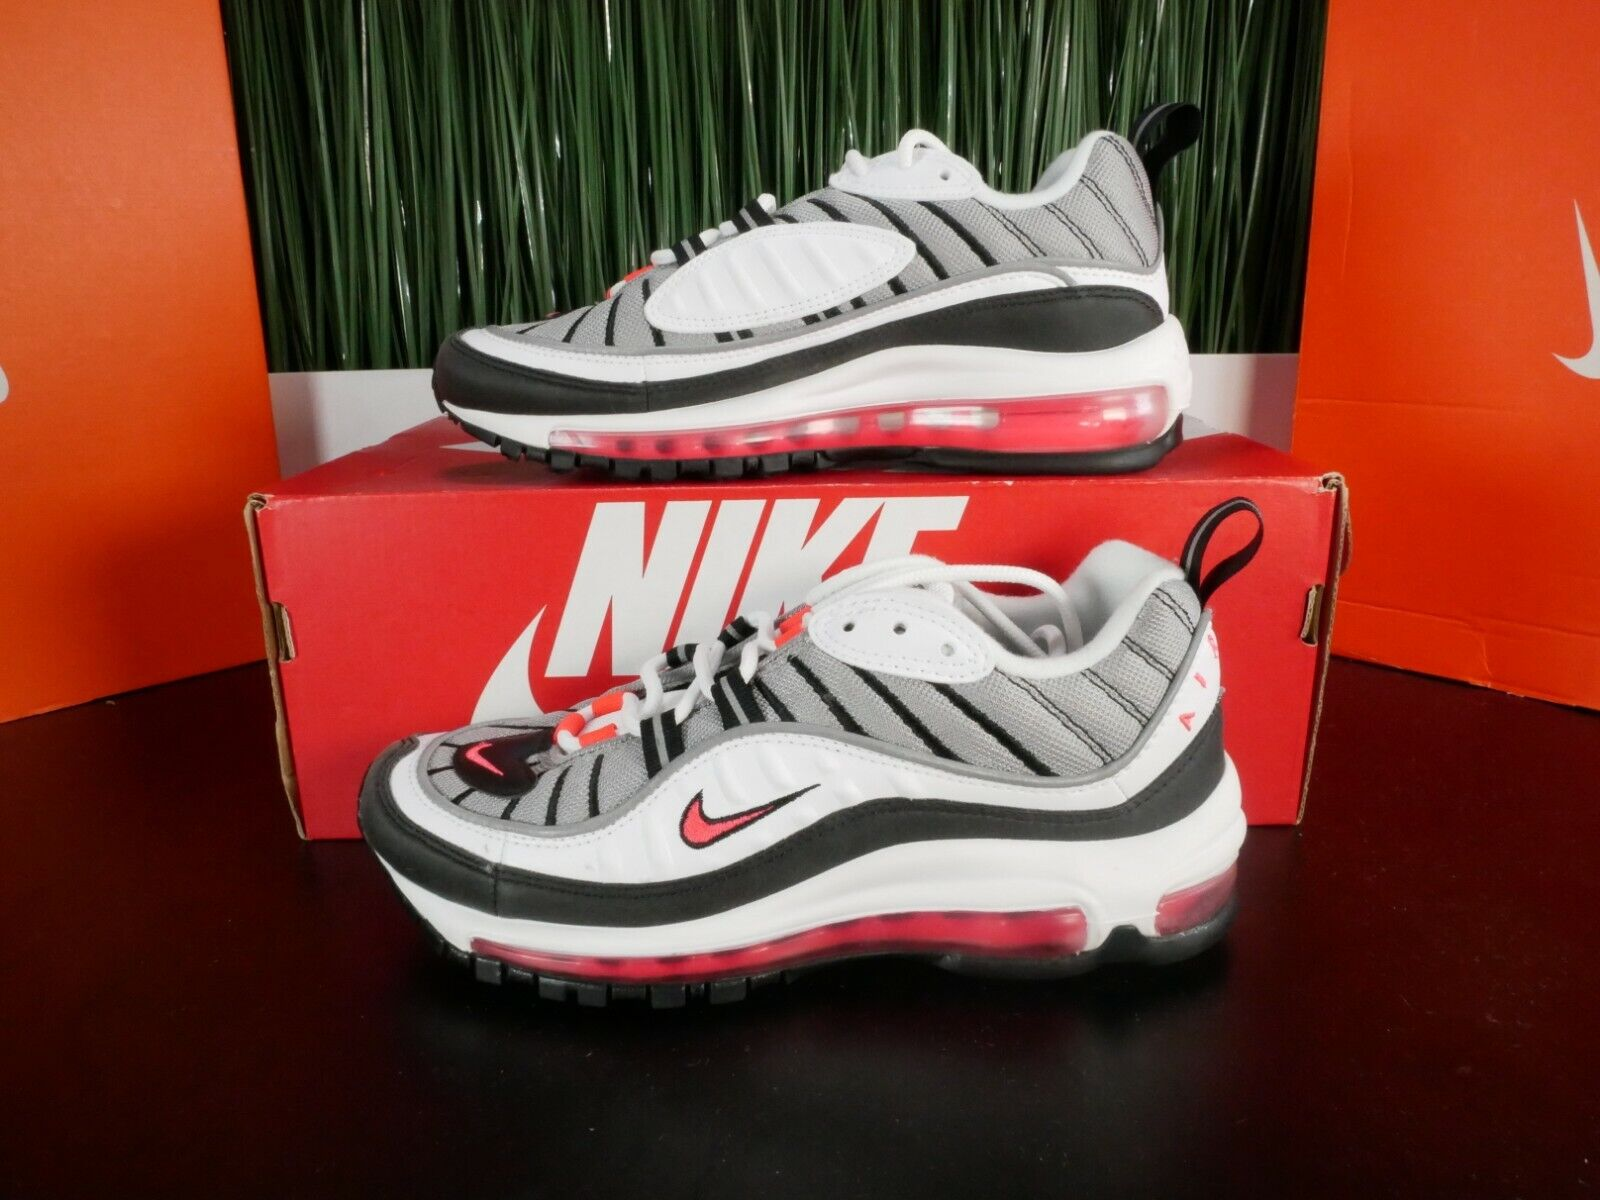 Nike Air Max 98 Solar Red White Womens Running Shoes AH6799 104 Size 6 8.5